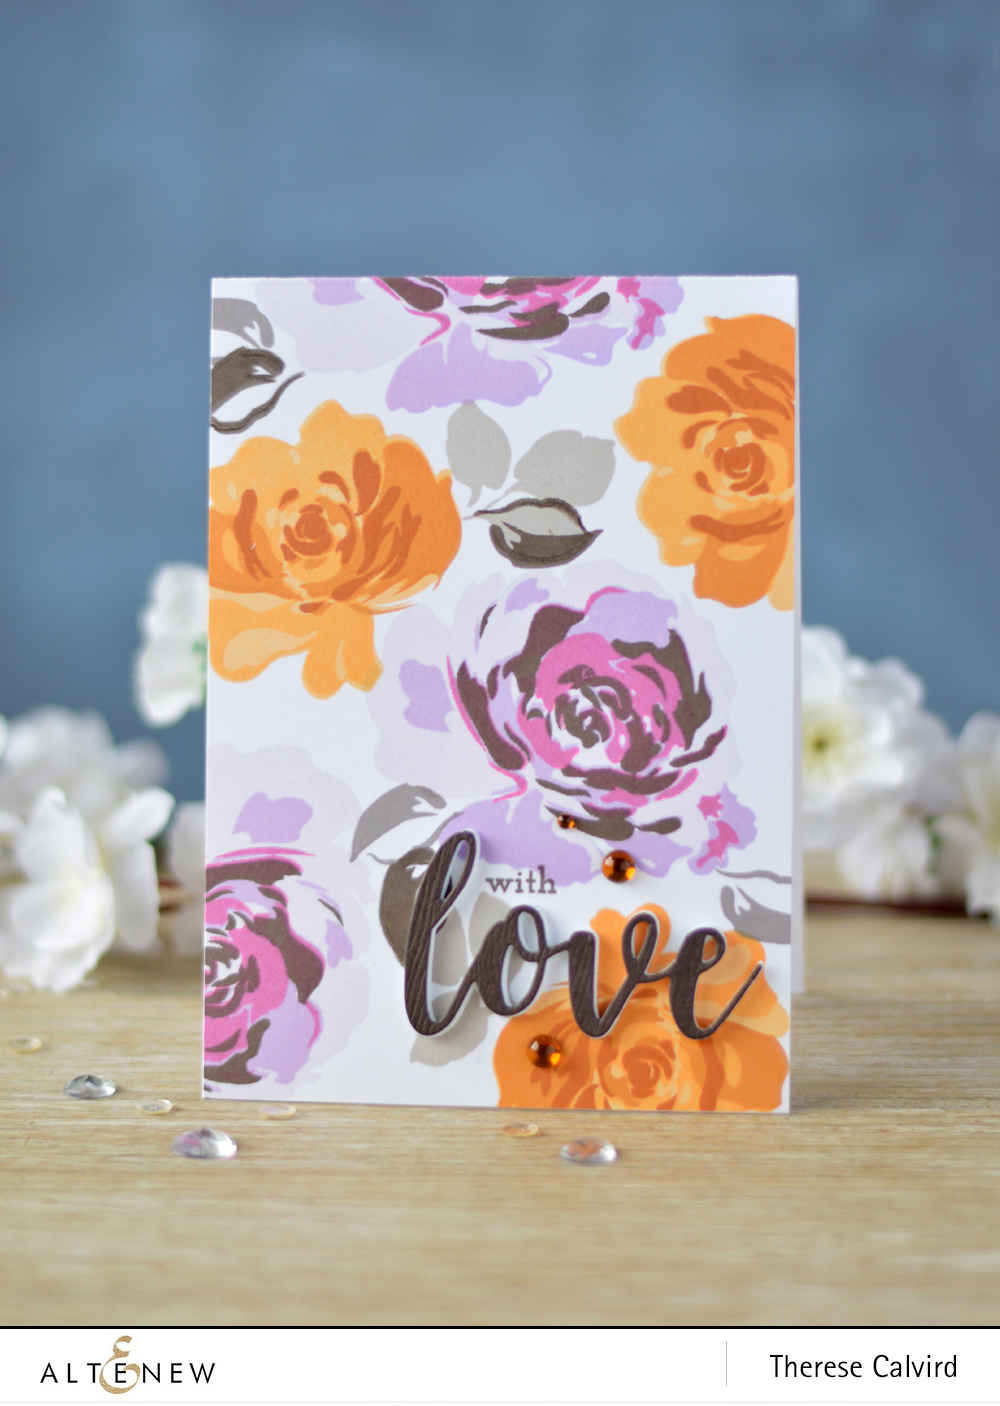 Altenew - Floral Fantasy - Super Script 2 - Lostinpaper (card video) 2 copy